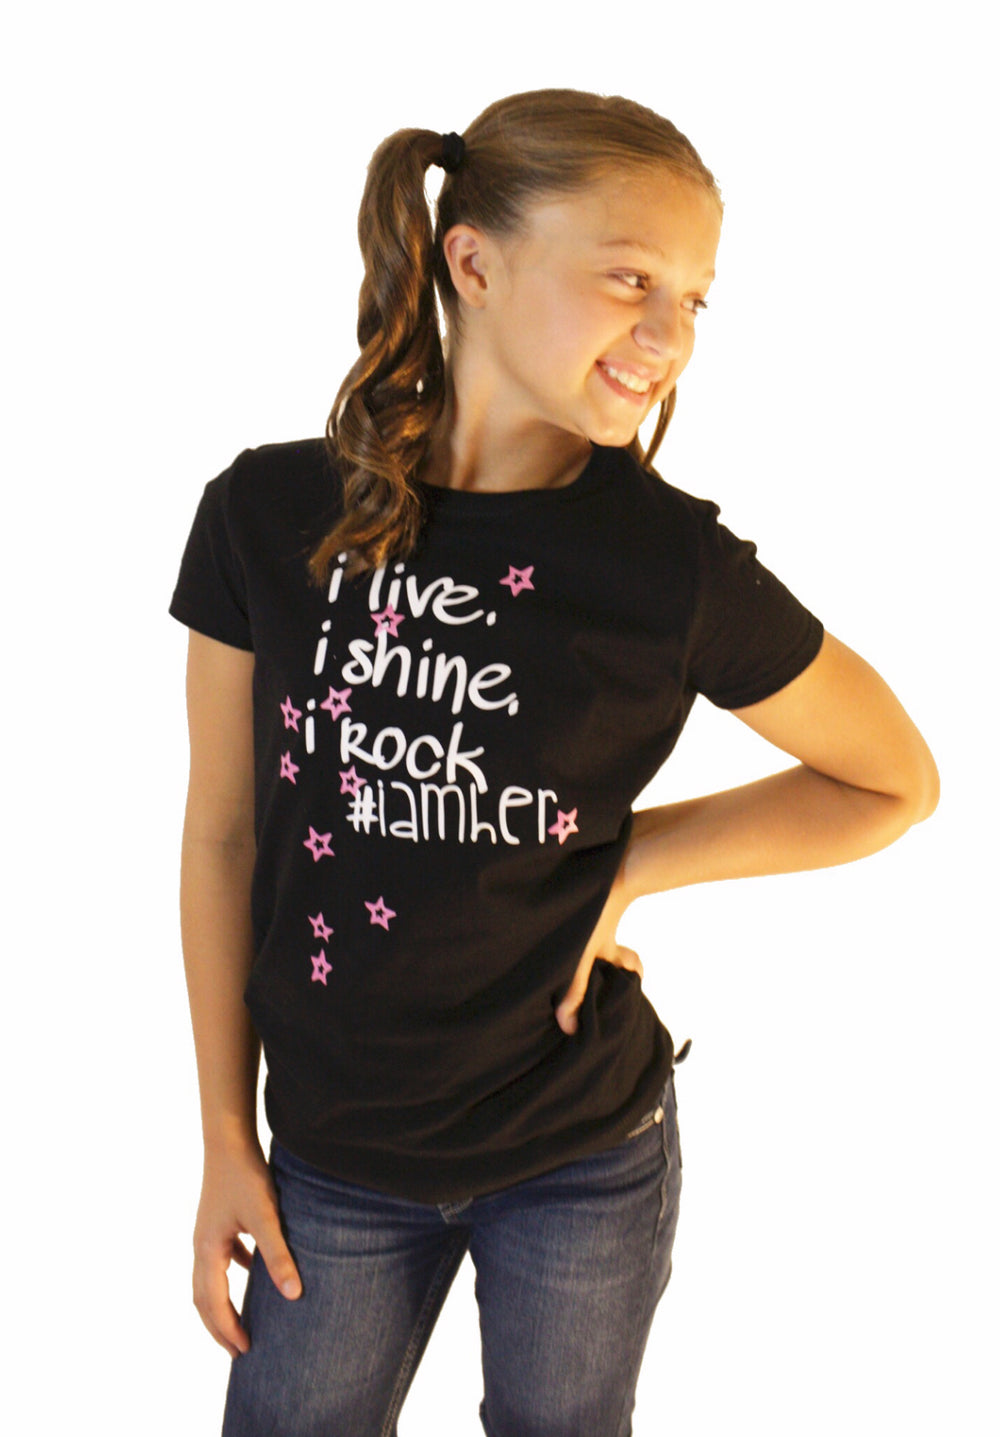 Girl wearing black graphic tee for girls with saying, I Live. I Rock. I Shine #IAMHER. Girls tees designed for her because it is never too early or too late for her to know her value and worth.